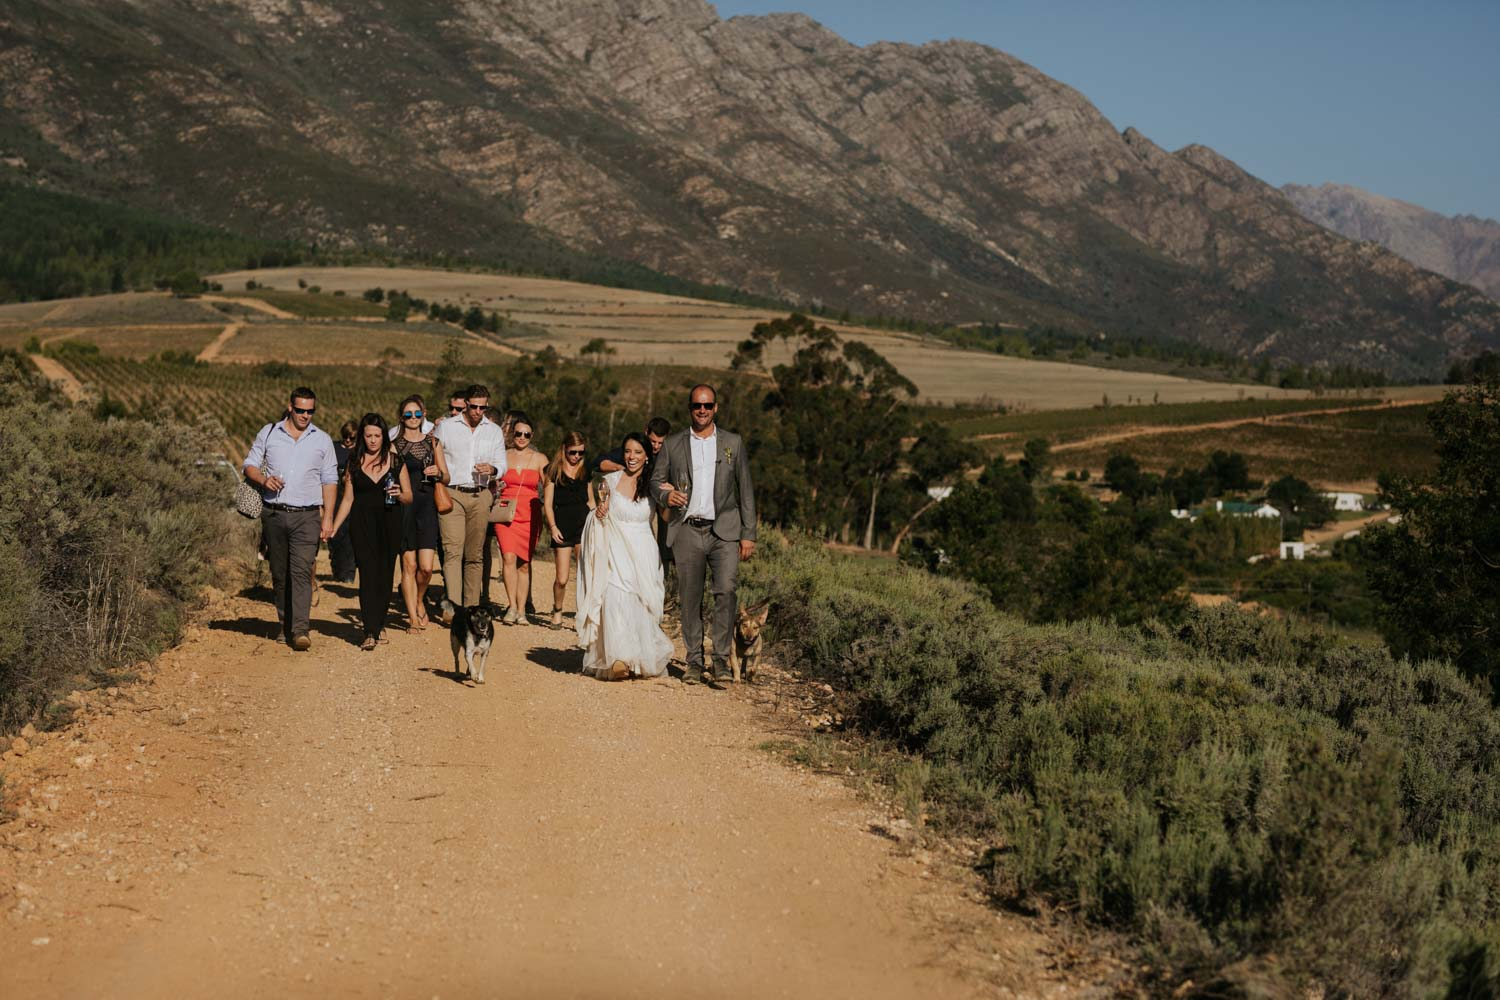 Epic moment where bride and groom lead their wedding party down a dusty farm road, singing and drinking wine, towards the reception dinner in the Tulbagh mountains, near Riebeek Kasteel.